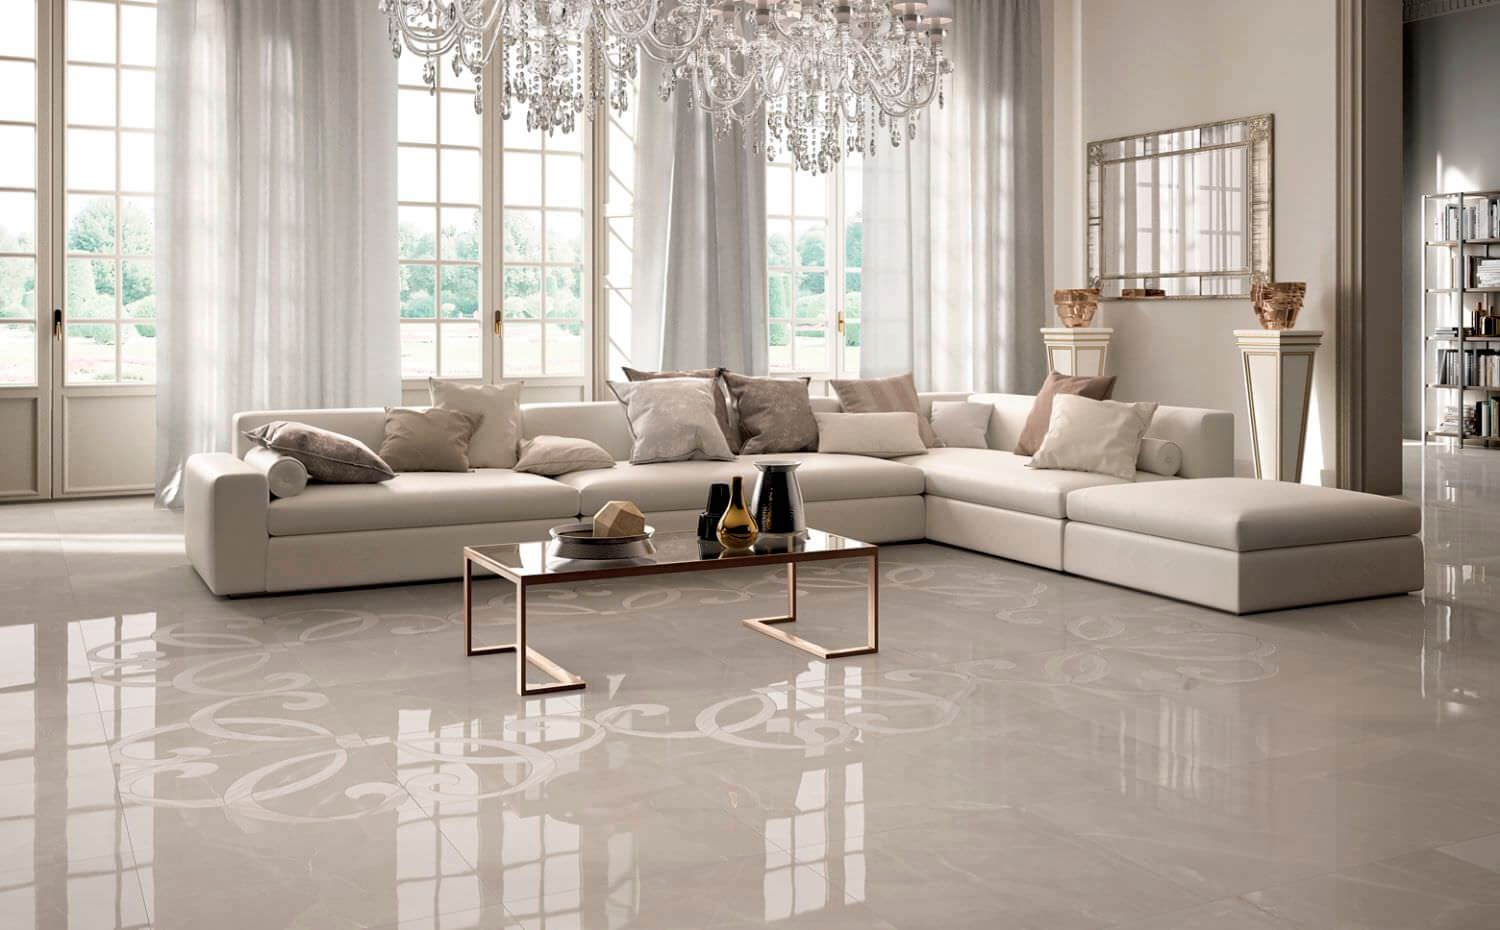 Floor Tiles Design Justifying The Beauty Of Your Living Room Lock Your Room Tiles Des Tile Floor Living Room Floor Tiles Living Room Modern Living Room Tiles